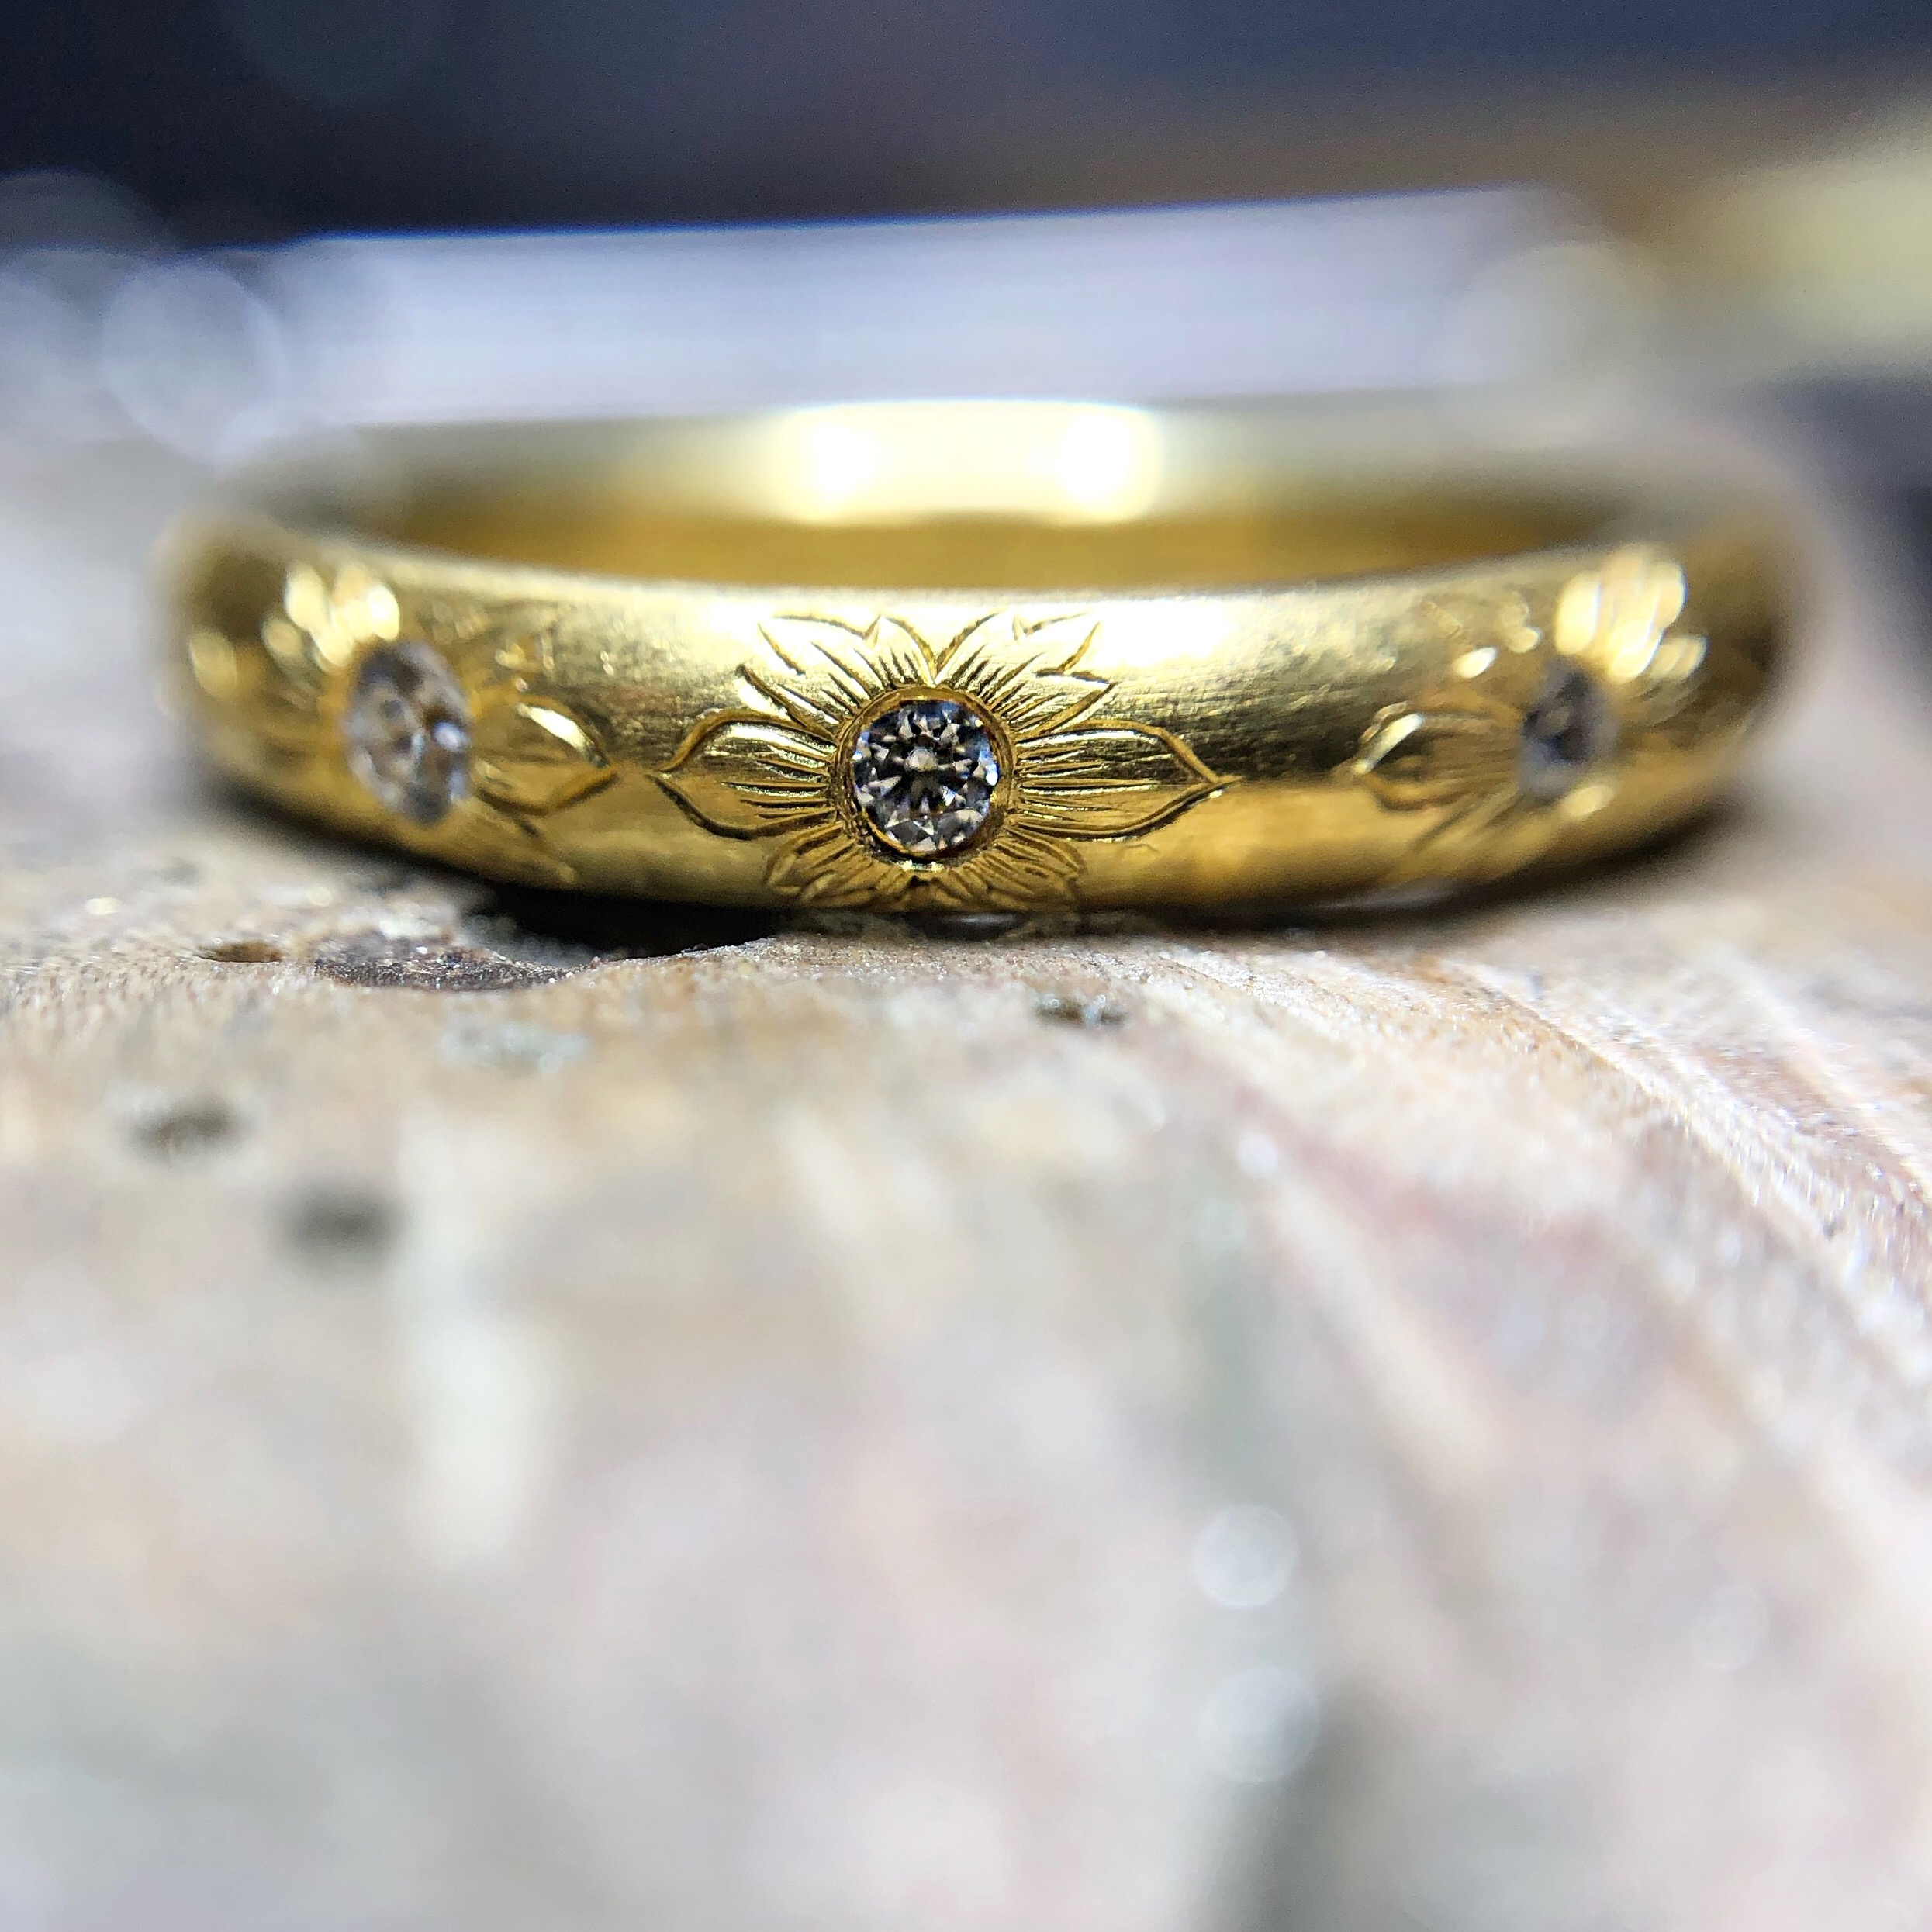 Hand-Engraved-Wedding-Ring.jpeg